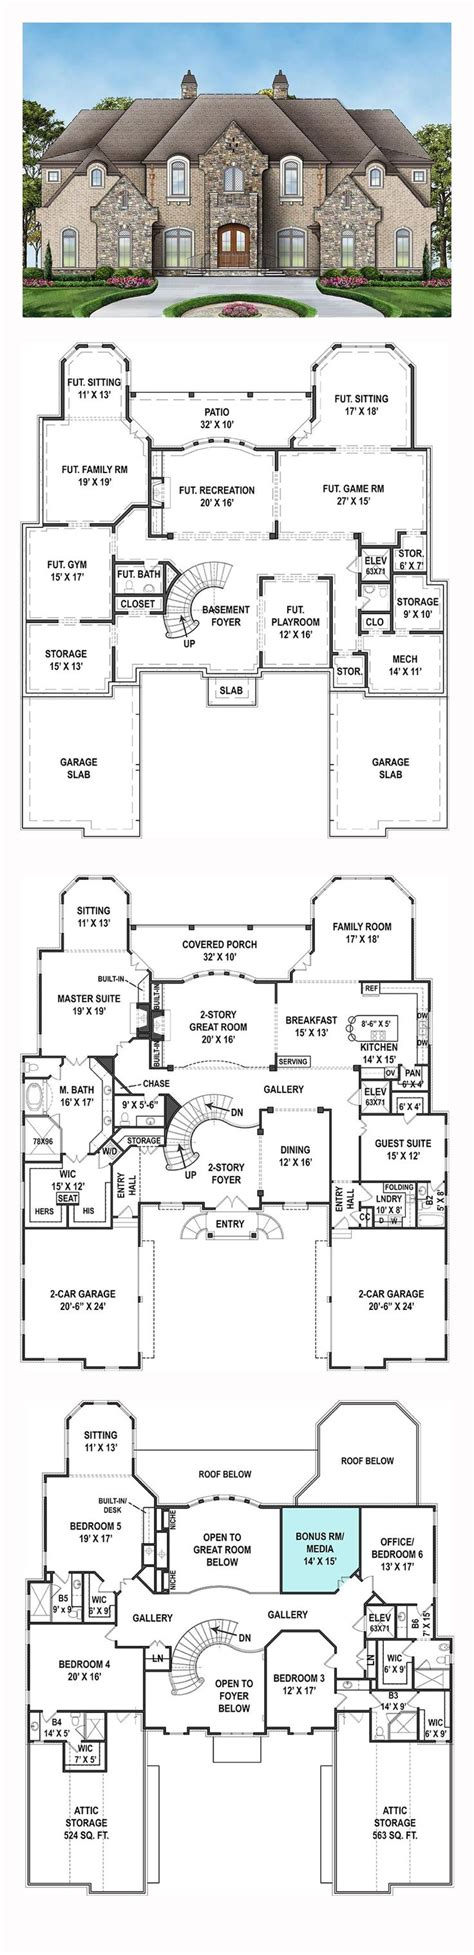 country plans country house plans home design ideas